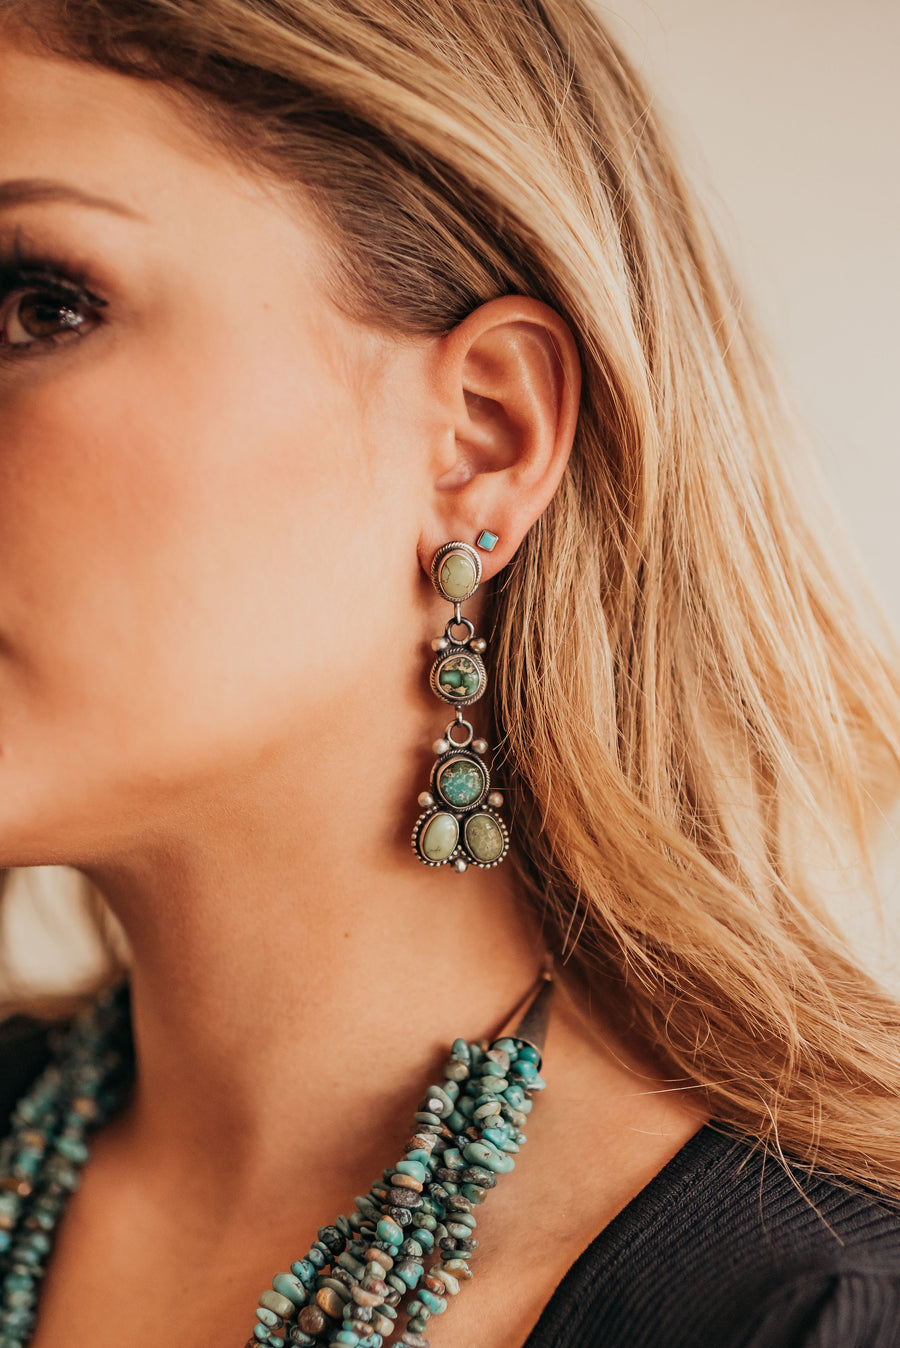 The Millie Earrings